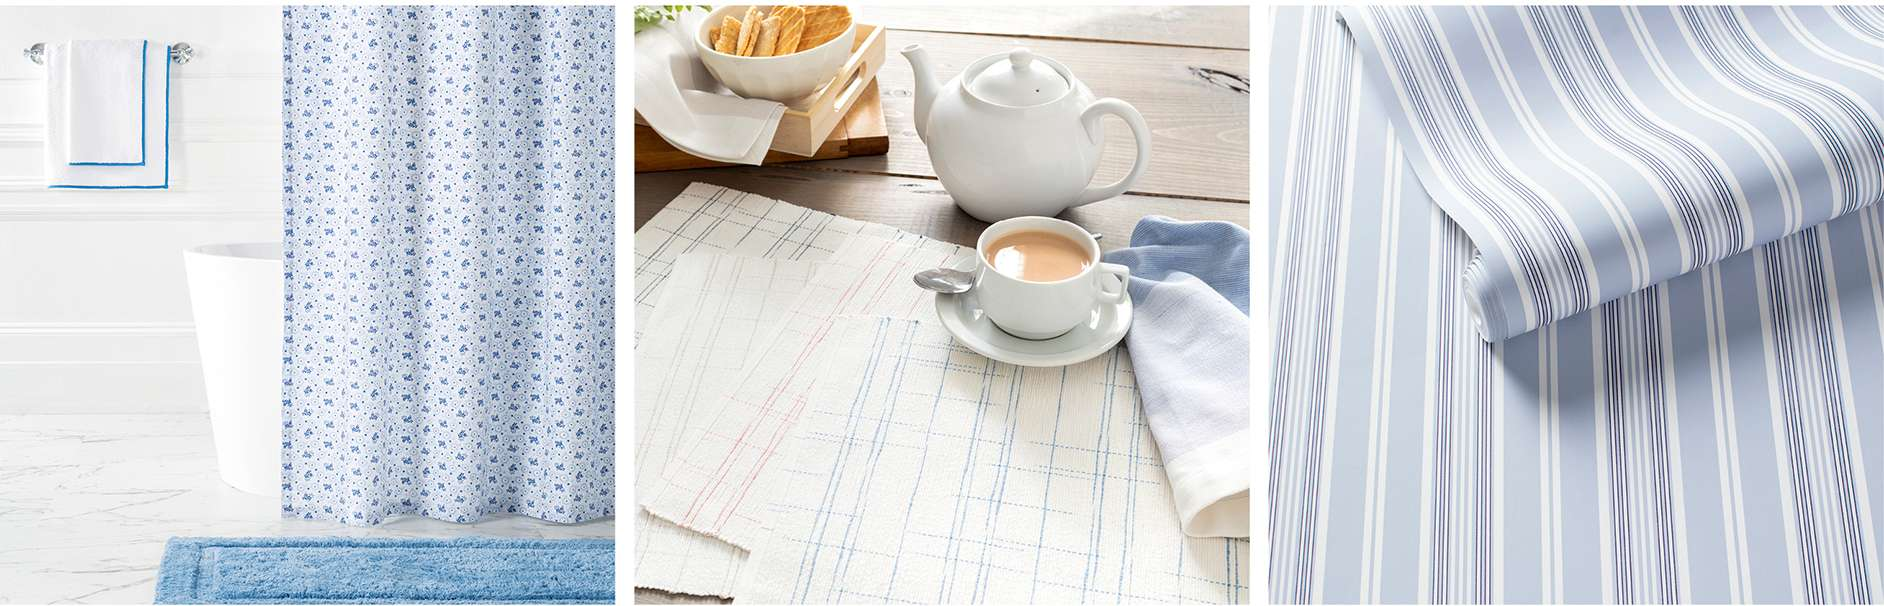 Shop Totes, Scarves and Pillows